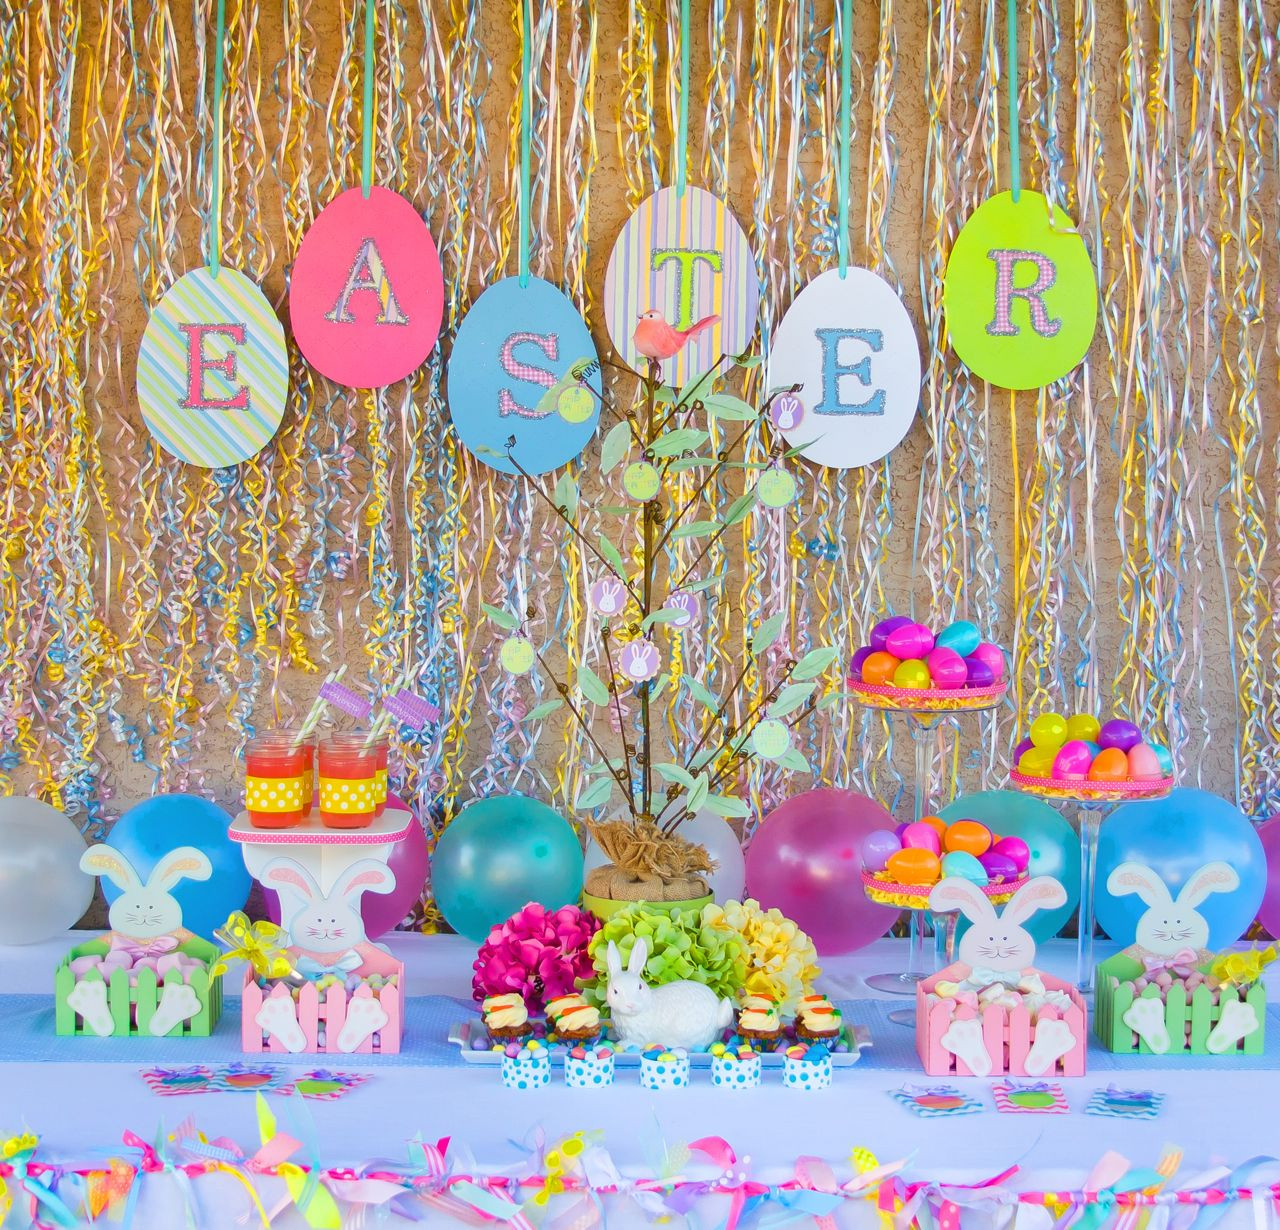 Best ideas about Easter Birthday Party . Save or Pin Easter Party Ideas Oh My Creative Now.